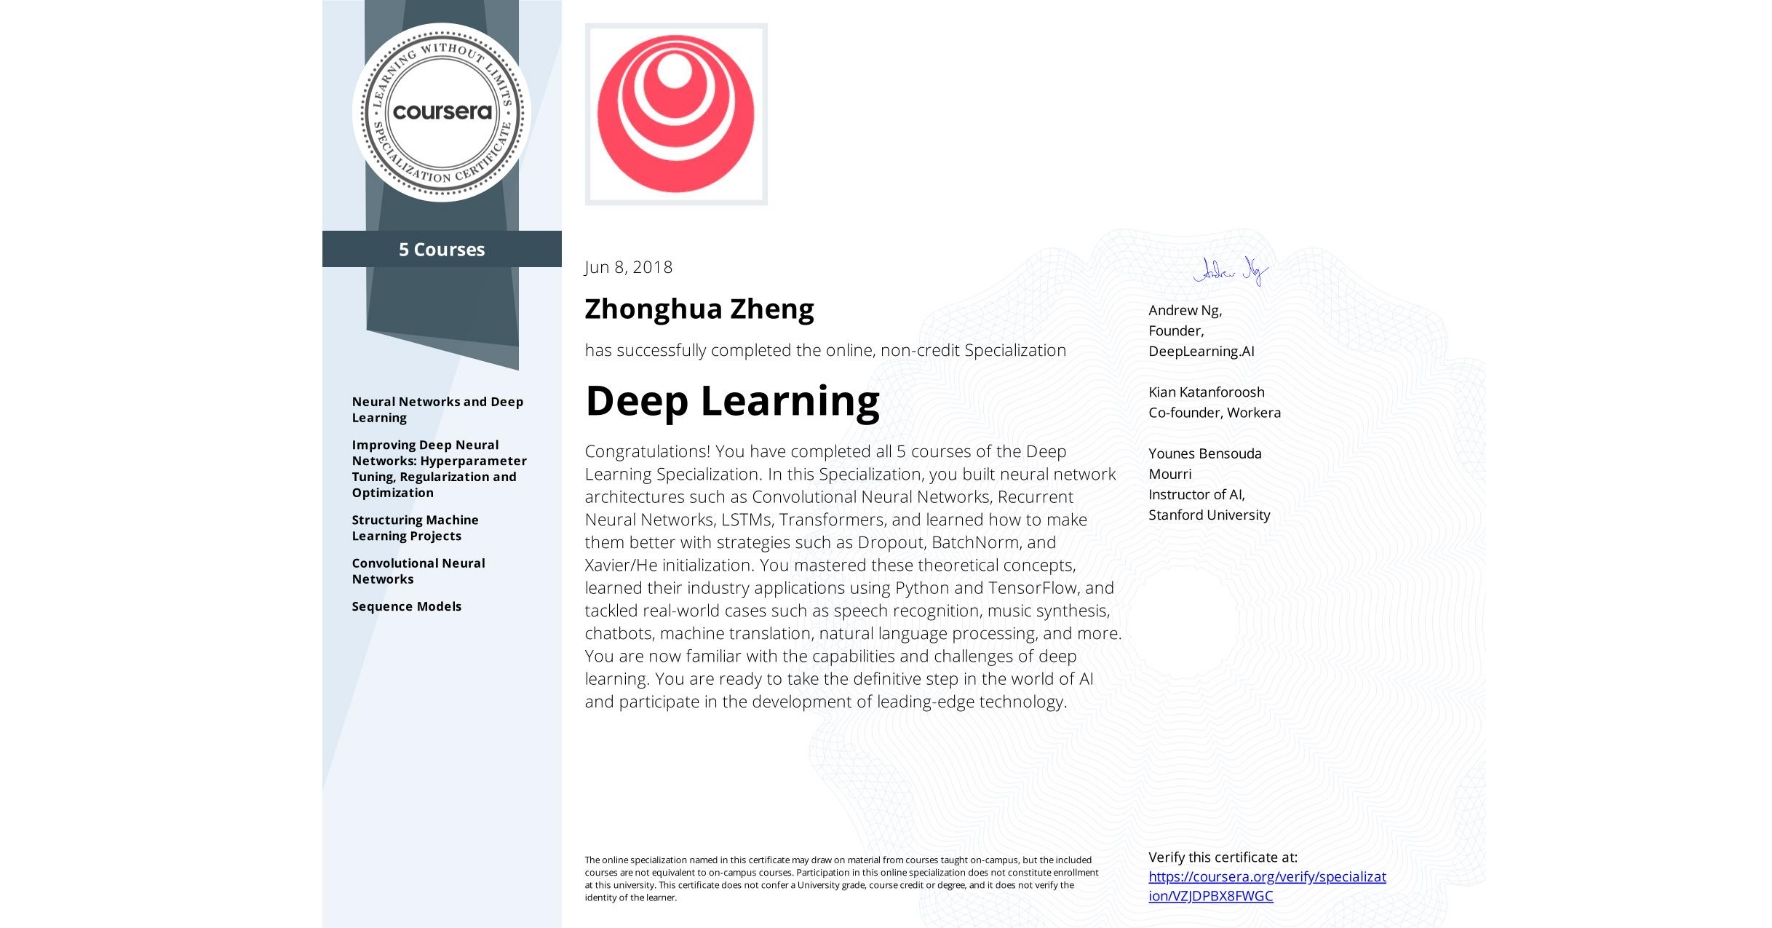 View certificate for Zhonghua Zheng, Deep Learning, offered through Coursera. Congratulations! You have completed all five courses of the Deep Learning Specialization.  In this Specialization, you built neural network architectures such as Convolutional Neural Networks, Recurrent Neural Networks, LSTMs, Transformers and learned how to make them better with strategies such as Dropout, BatchNorm, Xavier/He initialization, and more. You mastered these theoretical concepts and their application using Python and TensorFlow and also tackled real-world case studies such as autonomous driving, sign language reading, music generation, computer vision, speech recognition, and natural language processing.   You're now familiar with the capabilities, challenges, and consequences of deep learning and are ready to participate in the development of leading-edge AI technology.